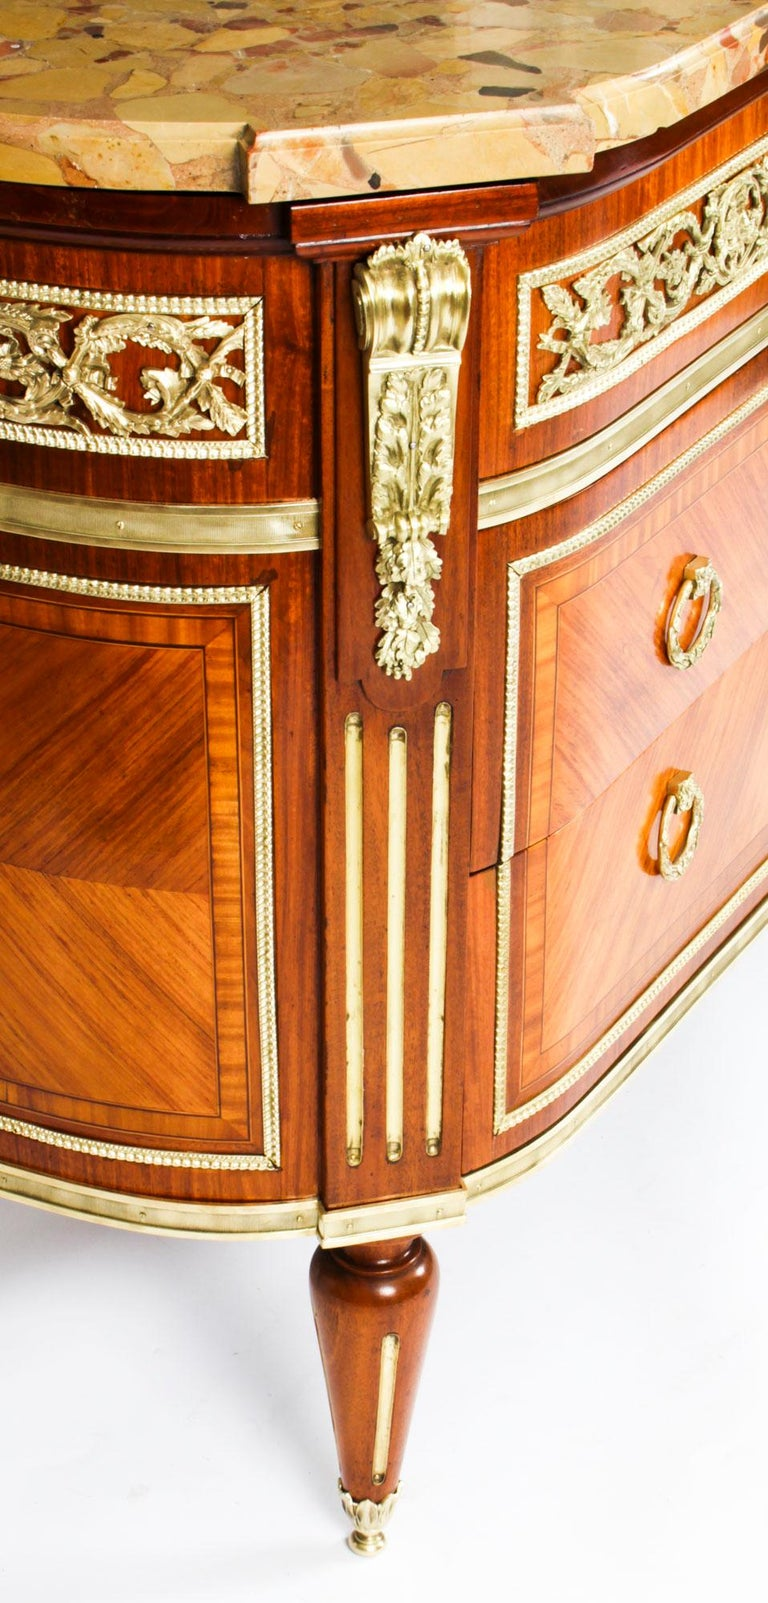 Antique French Louis Revival Ormolu Mounted Commode Chest, 19th C 6